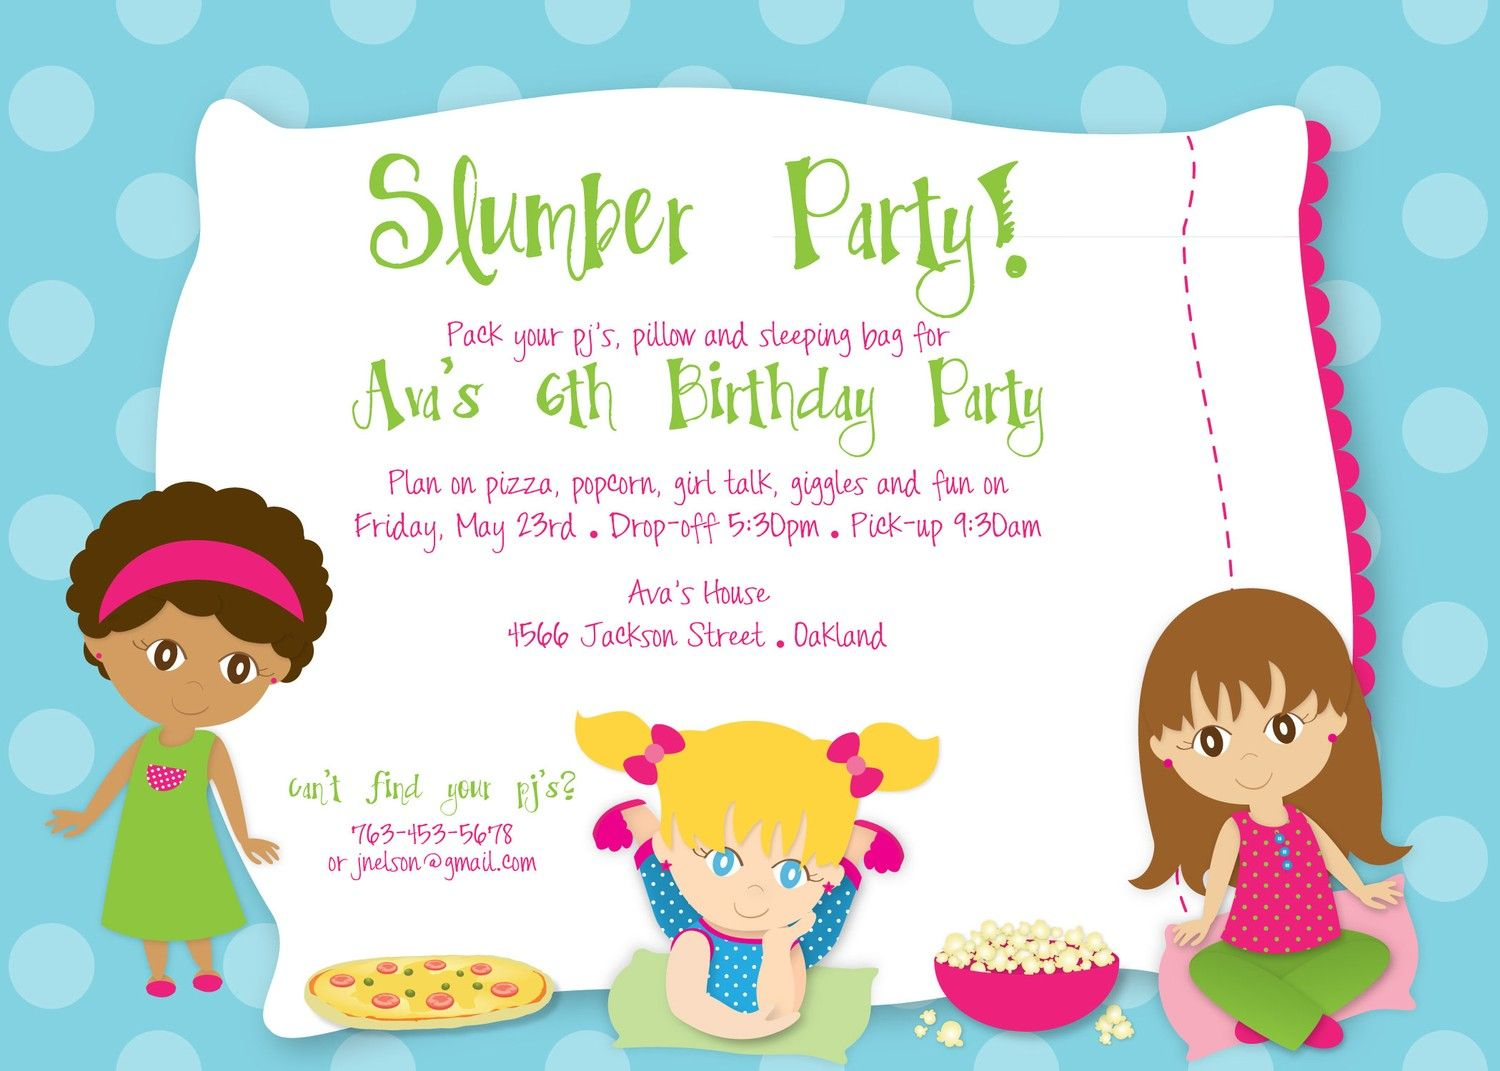 Slumber Party Invitation Lindsey Pinterest – Birthday Party Invitation Template Word